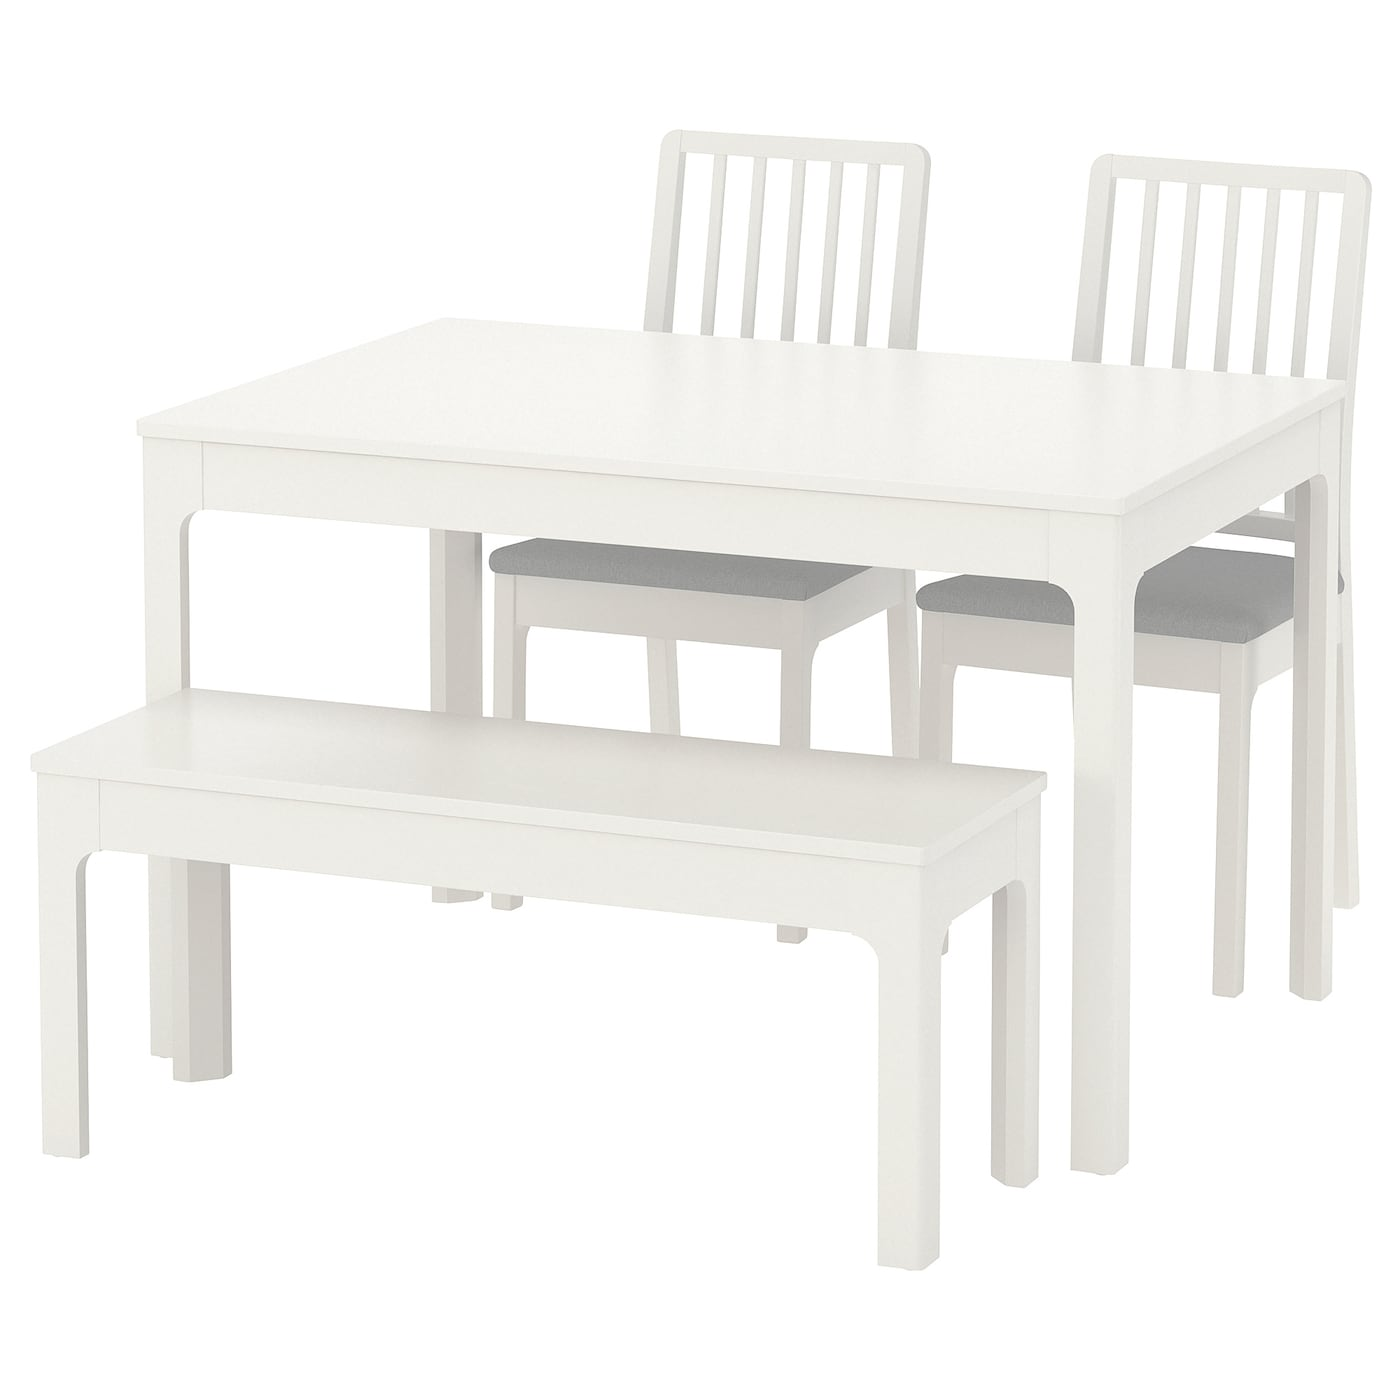 EKEDALEN / EKEDALEN   Table With 2 Chairs And Bench, White, Orrsta Light  Gray